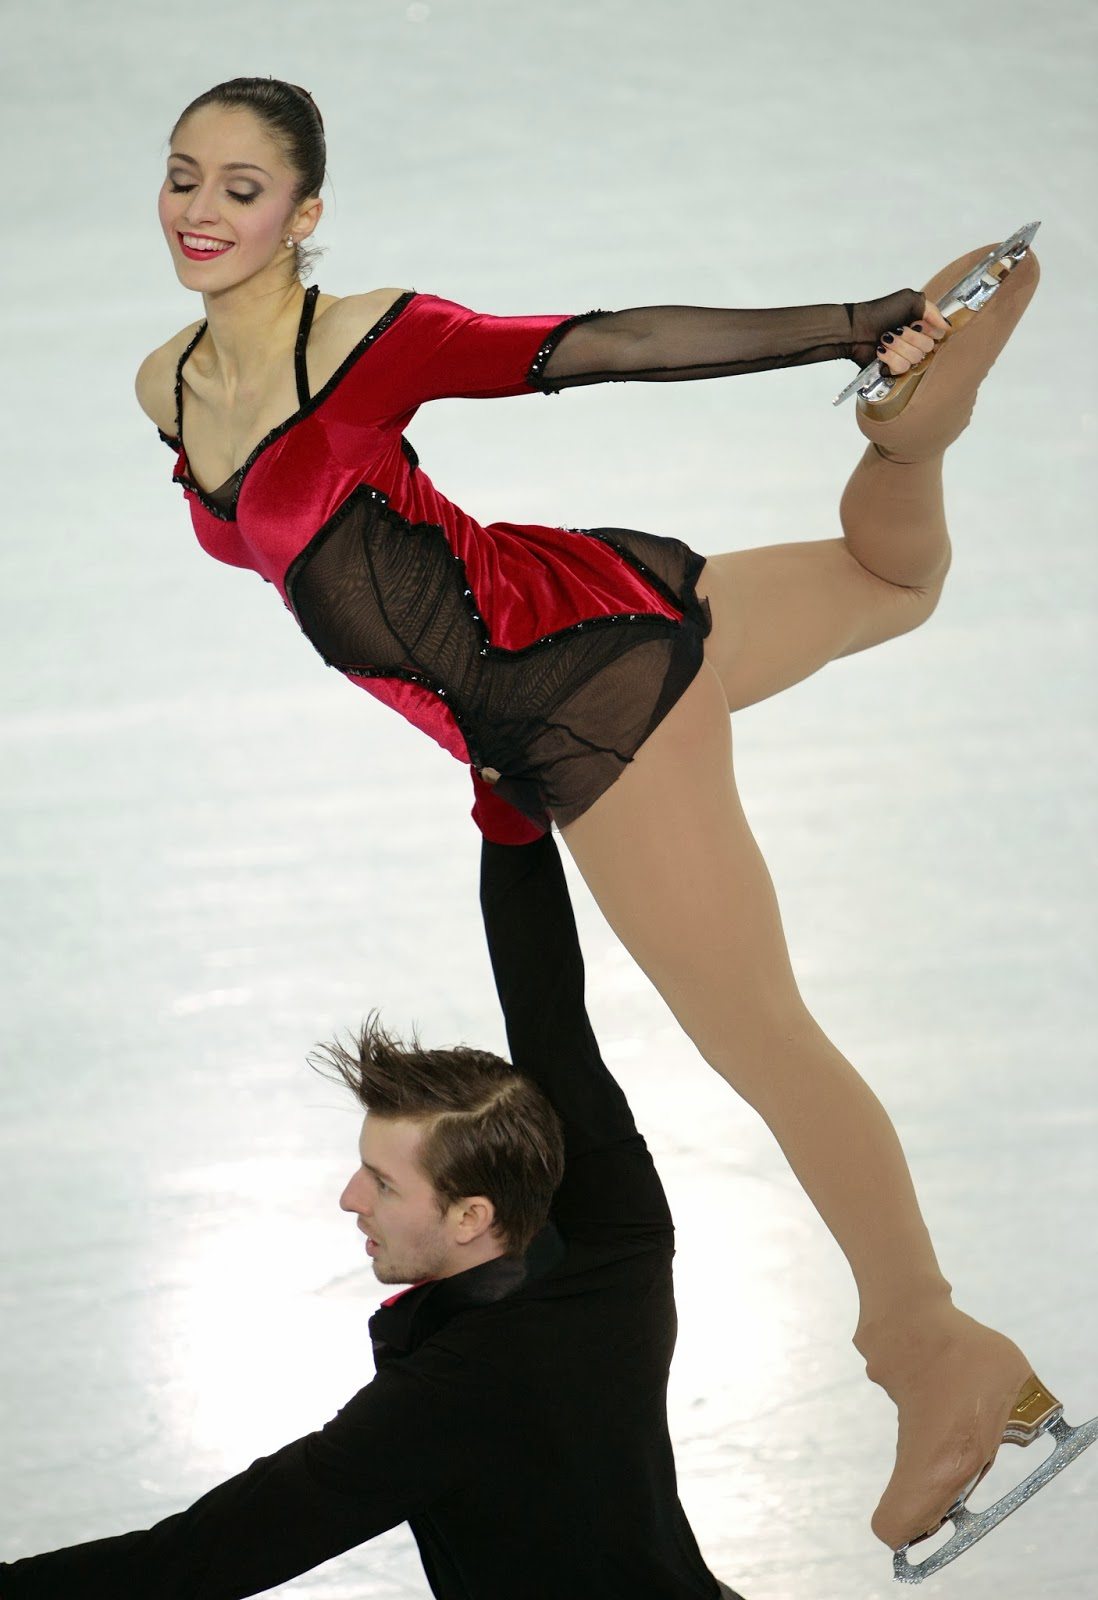 Figure Skating Pairs, Sochi Olympics, Sochi Winter Olympics, Olympics 2014, Russia, Winner, Germany, Sports, Figure Skating, Performance, Competition, Medalists, Gold medal, China, Canada, Italy, Israel,